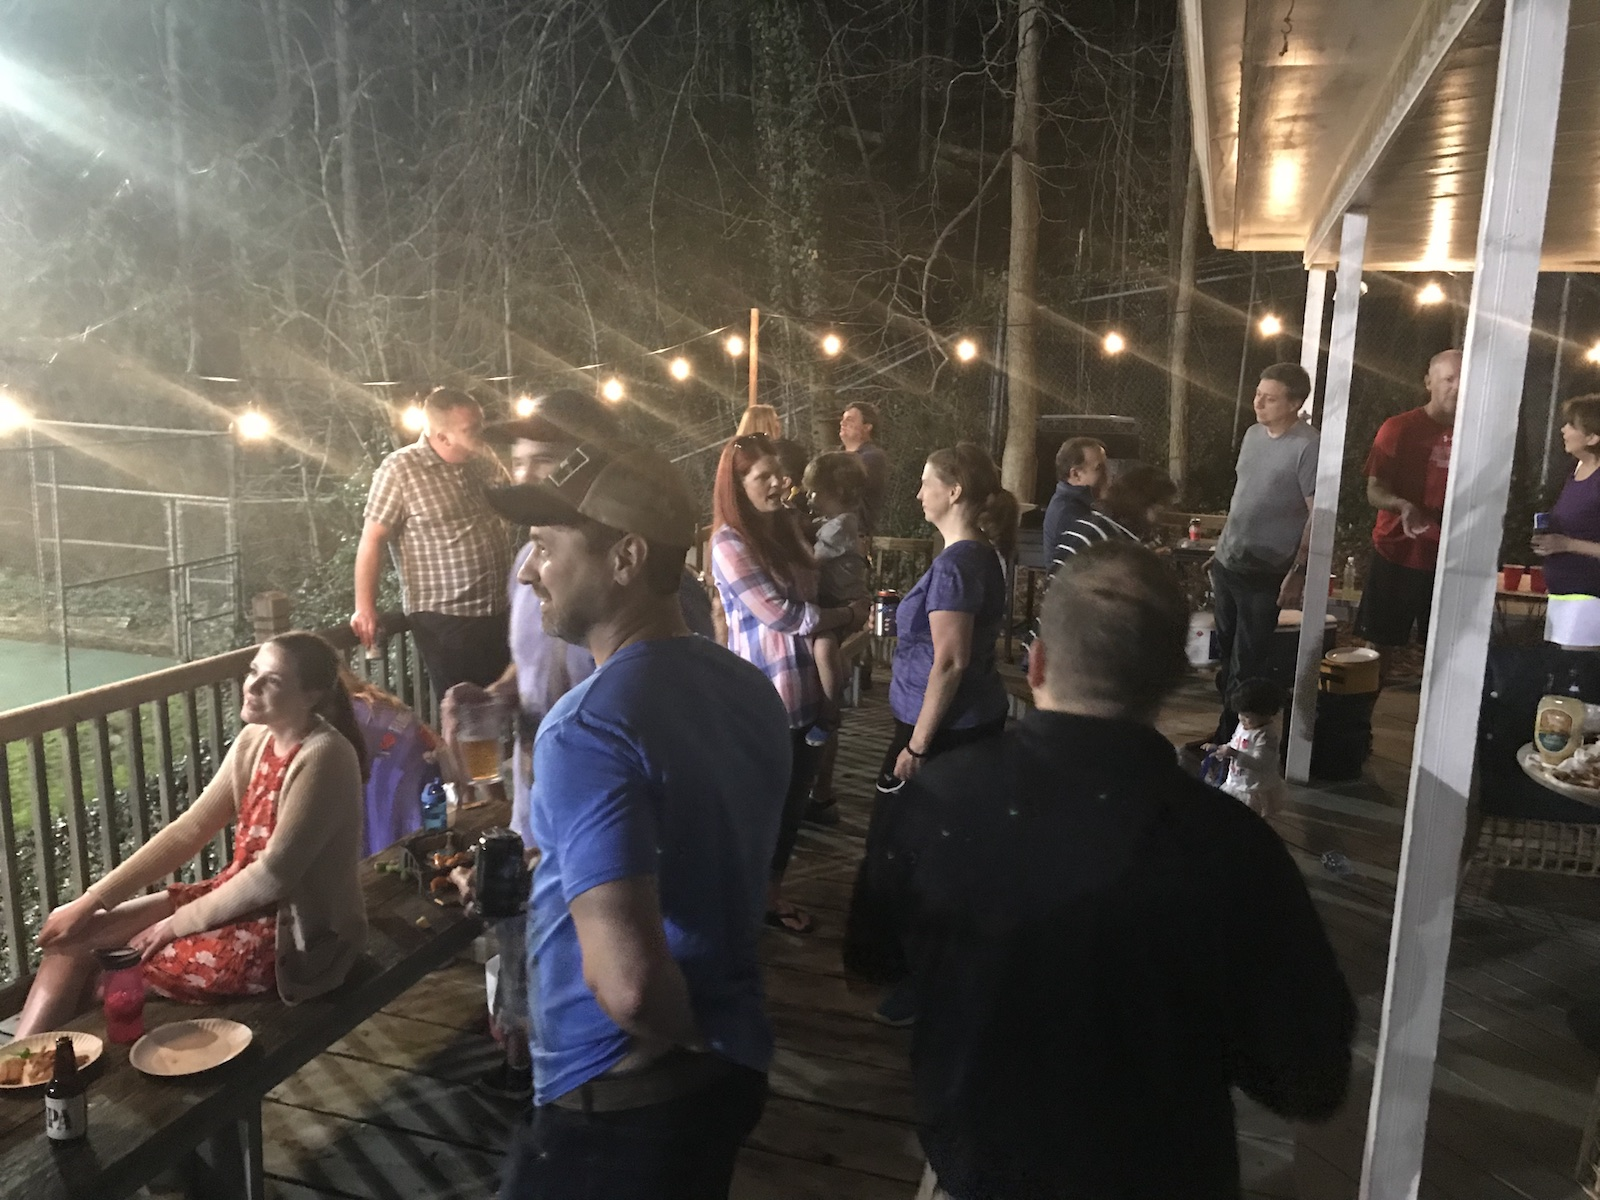 Spring Fever 2018 at the Georgetown Recreation Club